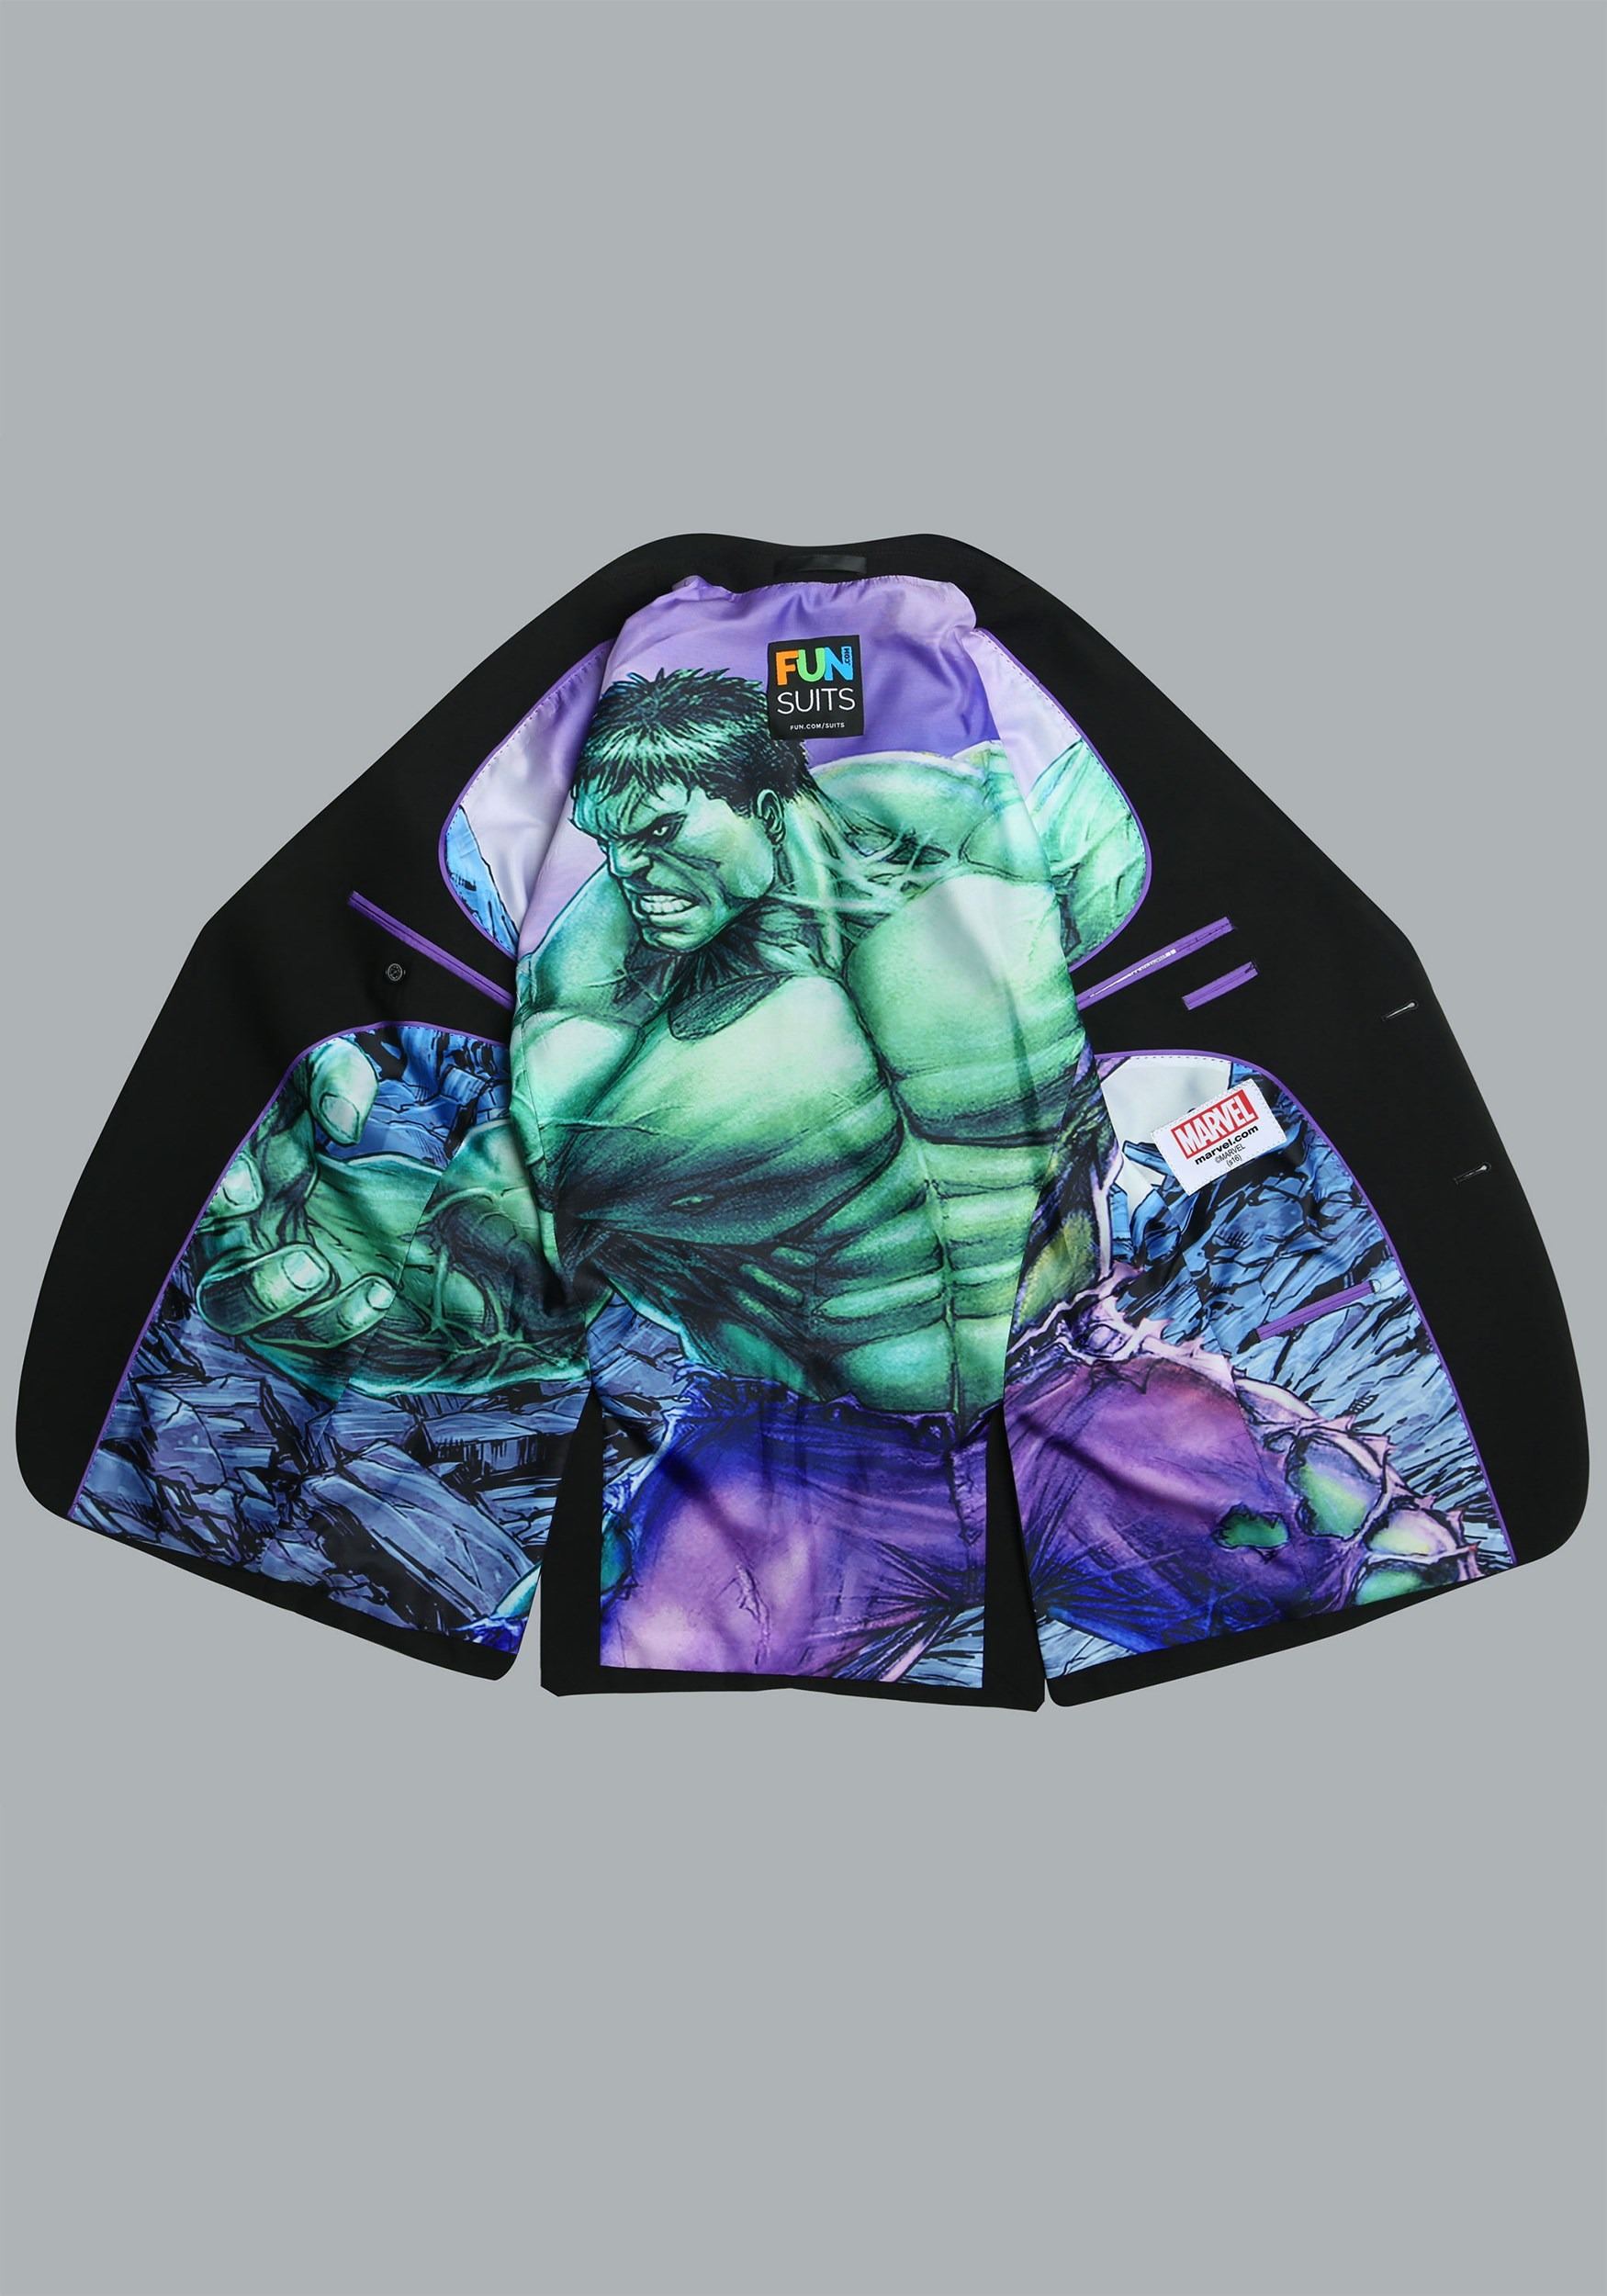 Incredible Hulk Suit Jacket (Secret Identity)